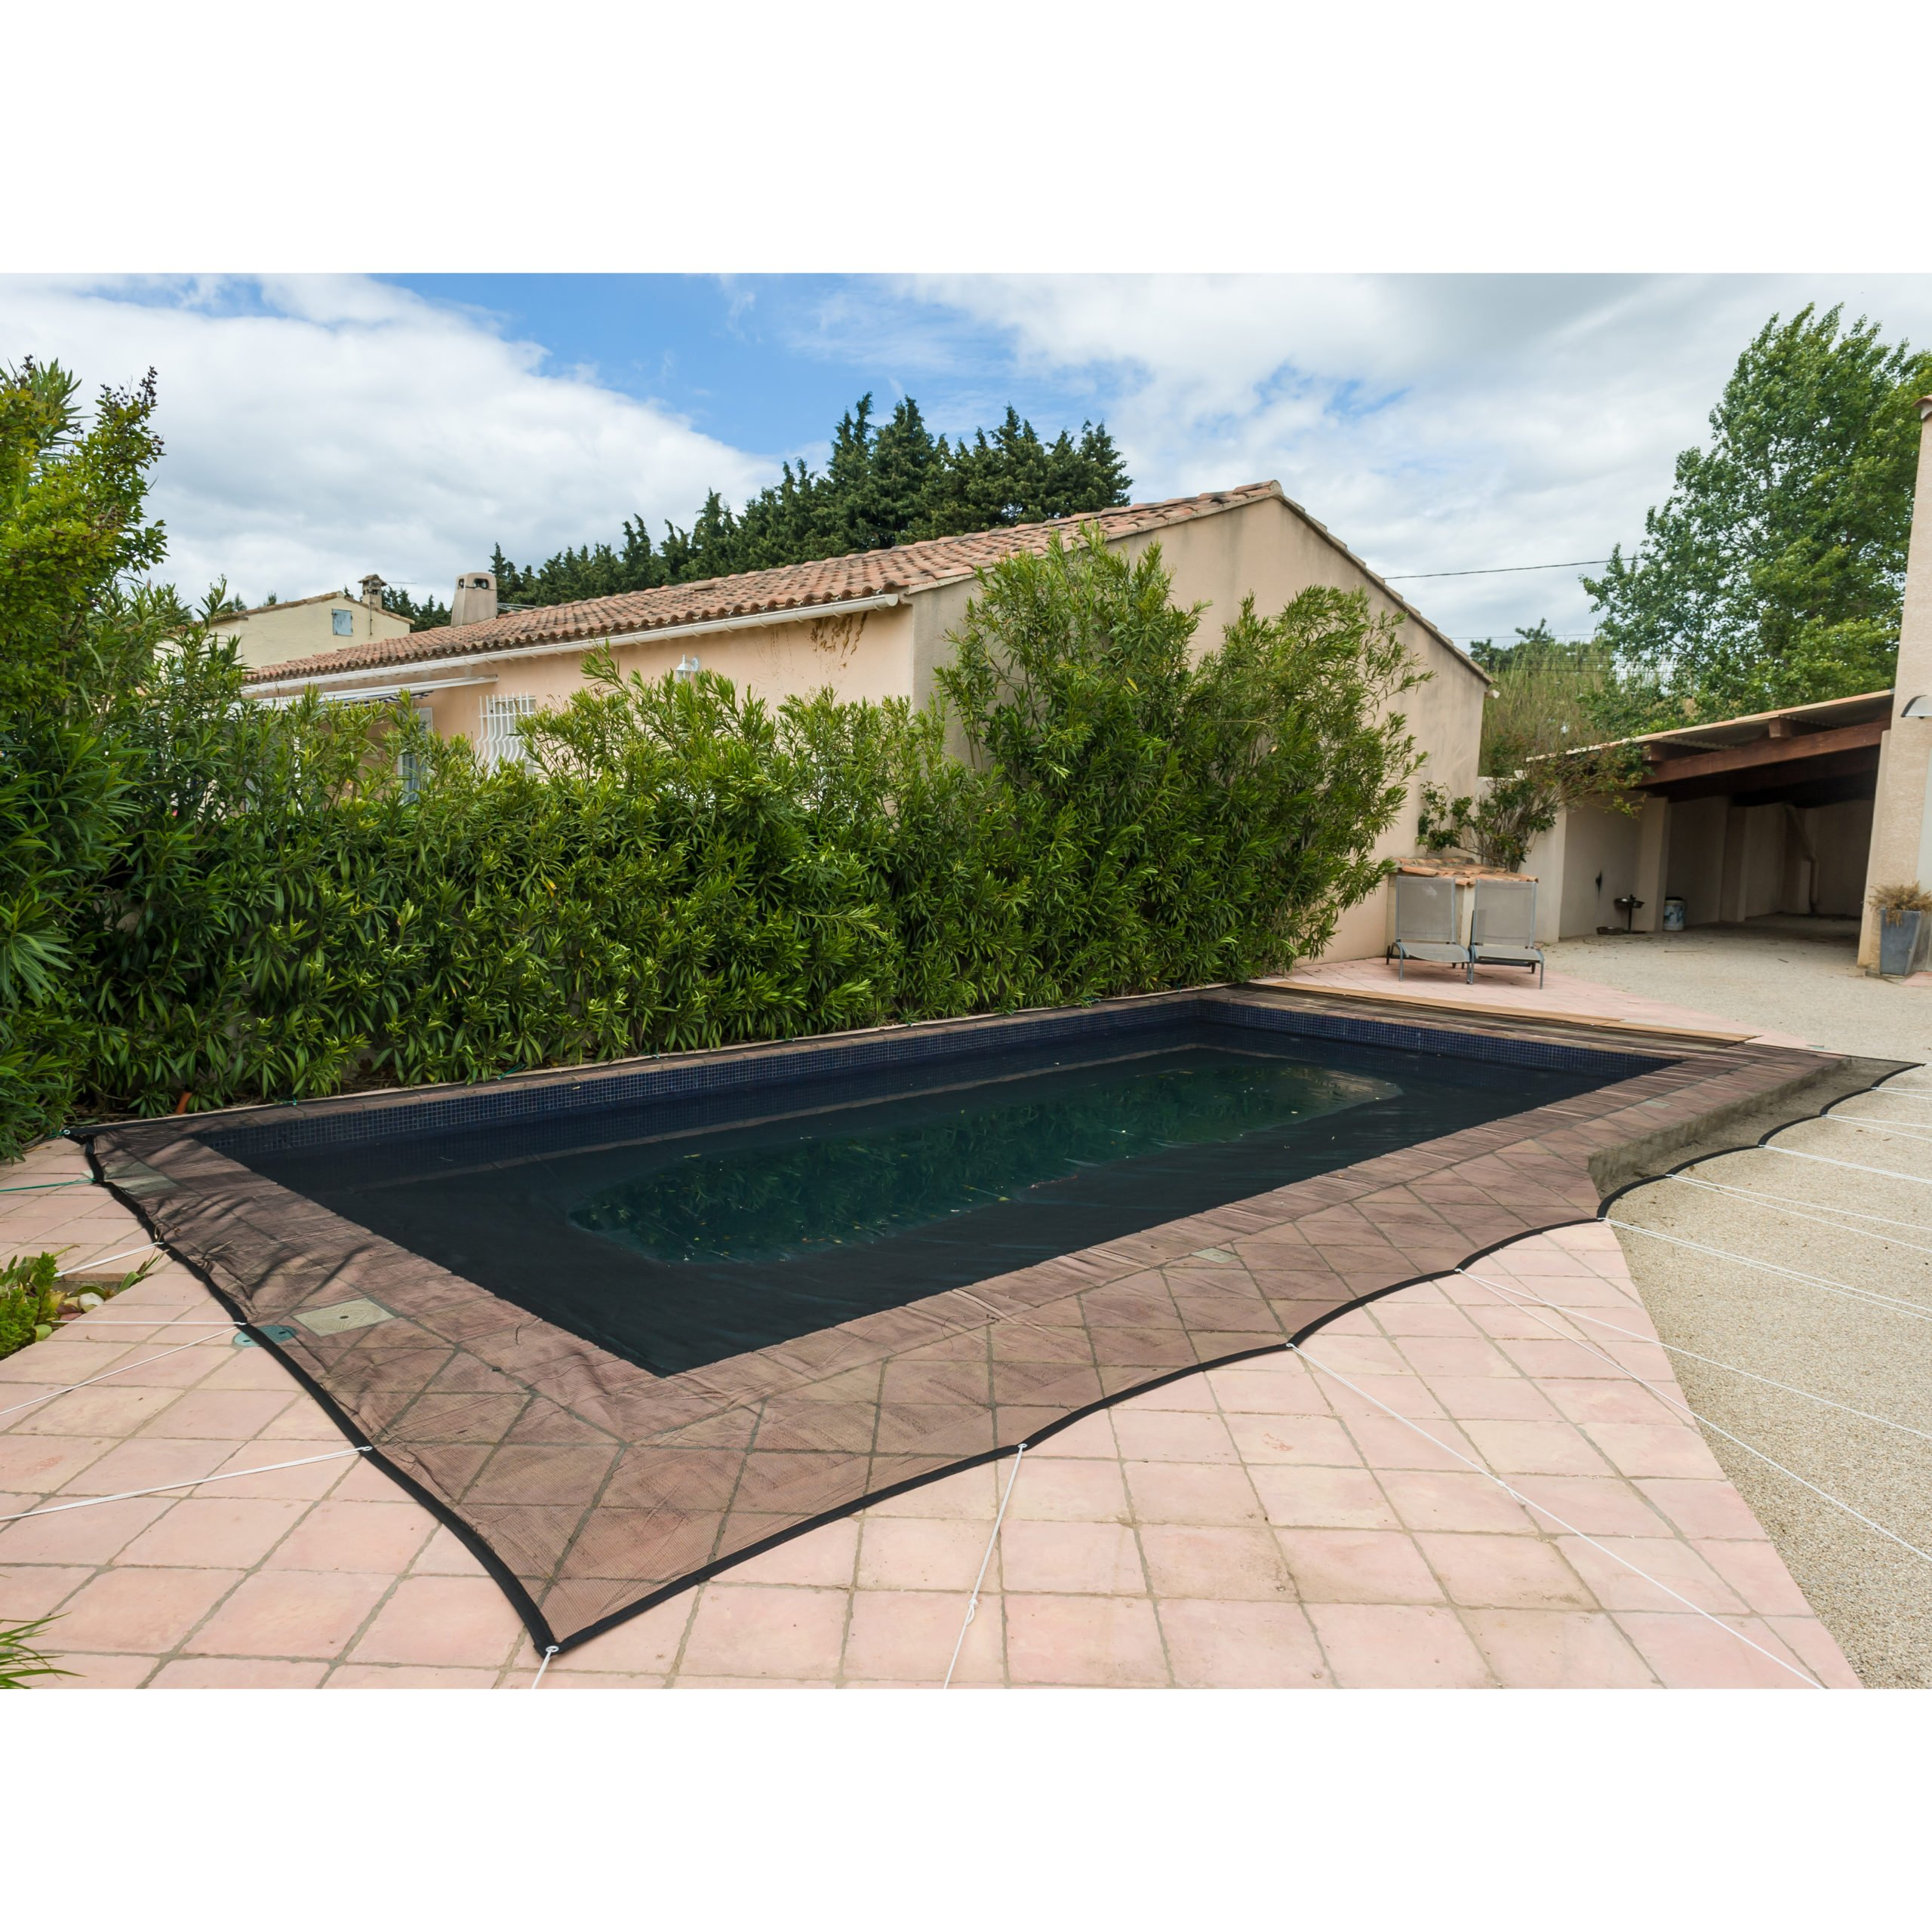 Filet De Protection Piscine 100G/m² Werkapro (4X7M) à Filet Protection Piscine